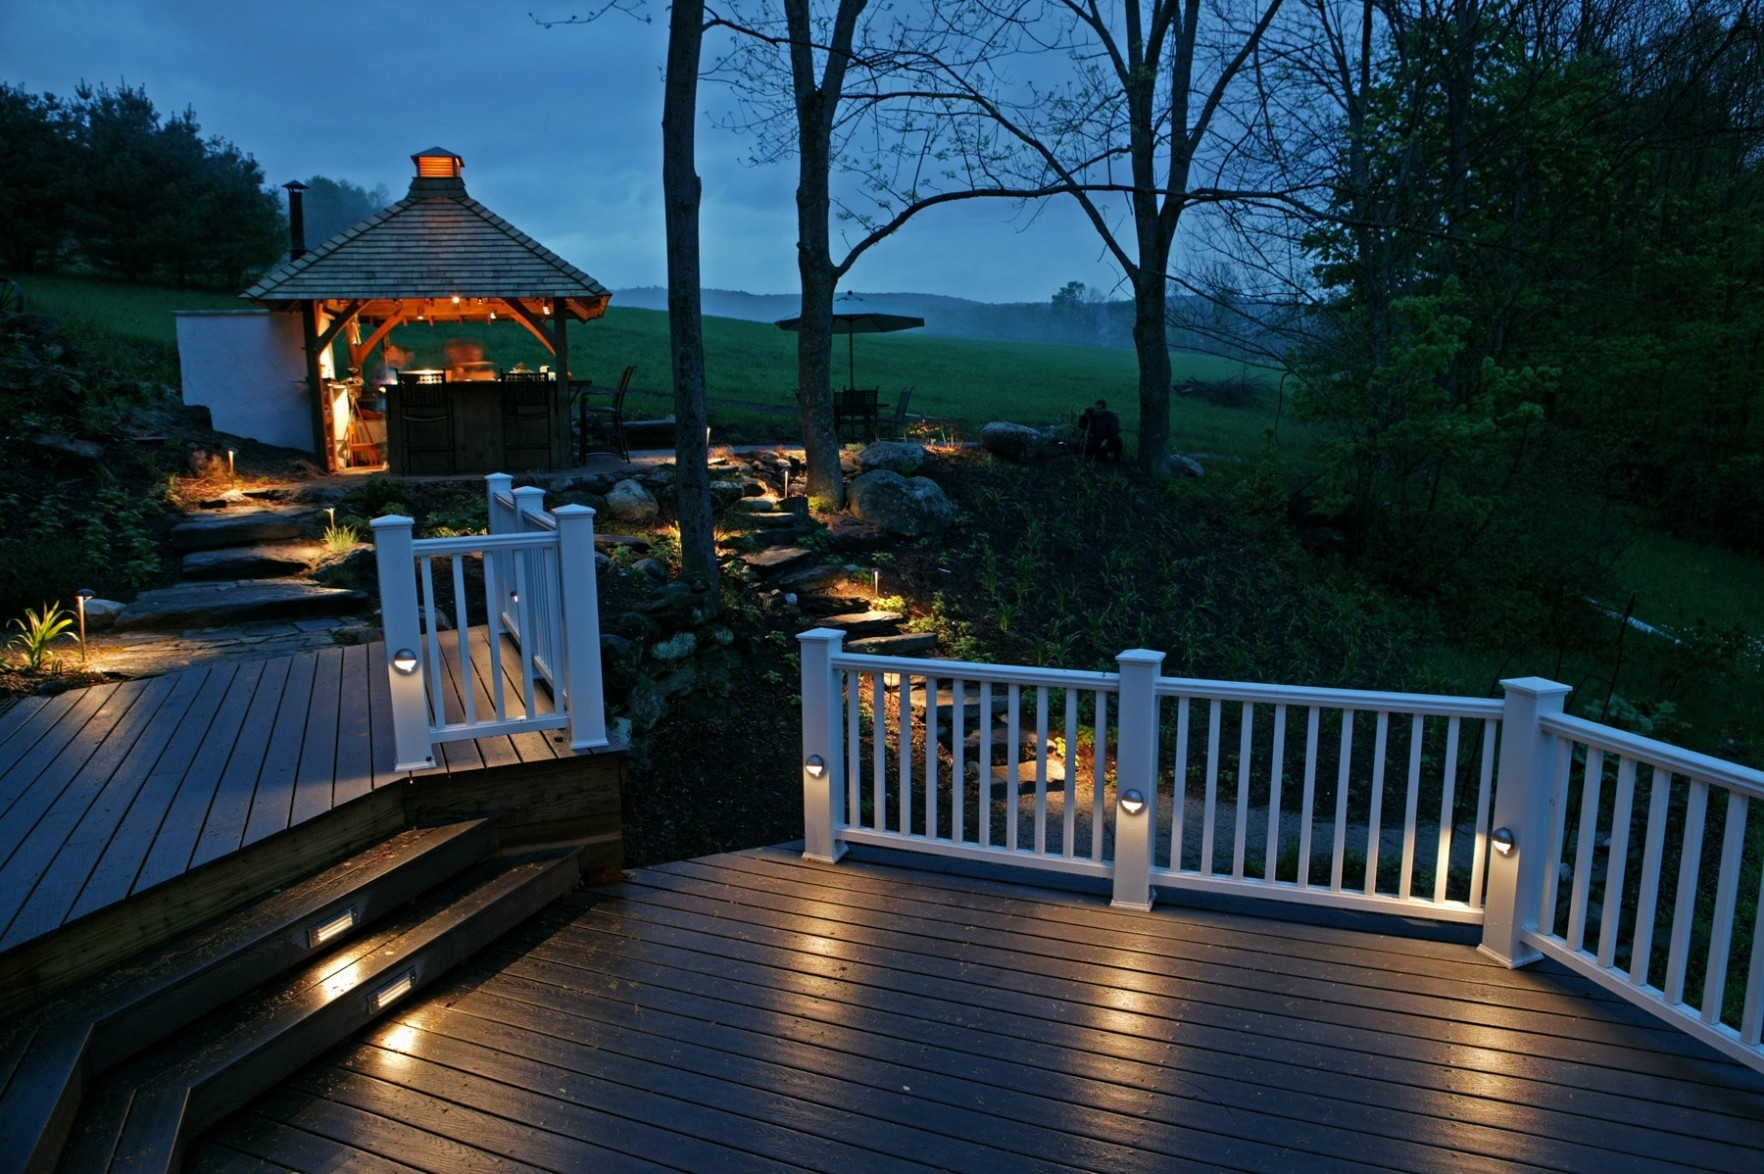 30 Luxury Outdoor Deck Lighting Ideas Pics : Foothillfolk Designs pertaining to Outdoor Deck Lanterns (Image 4 of 20)